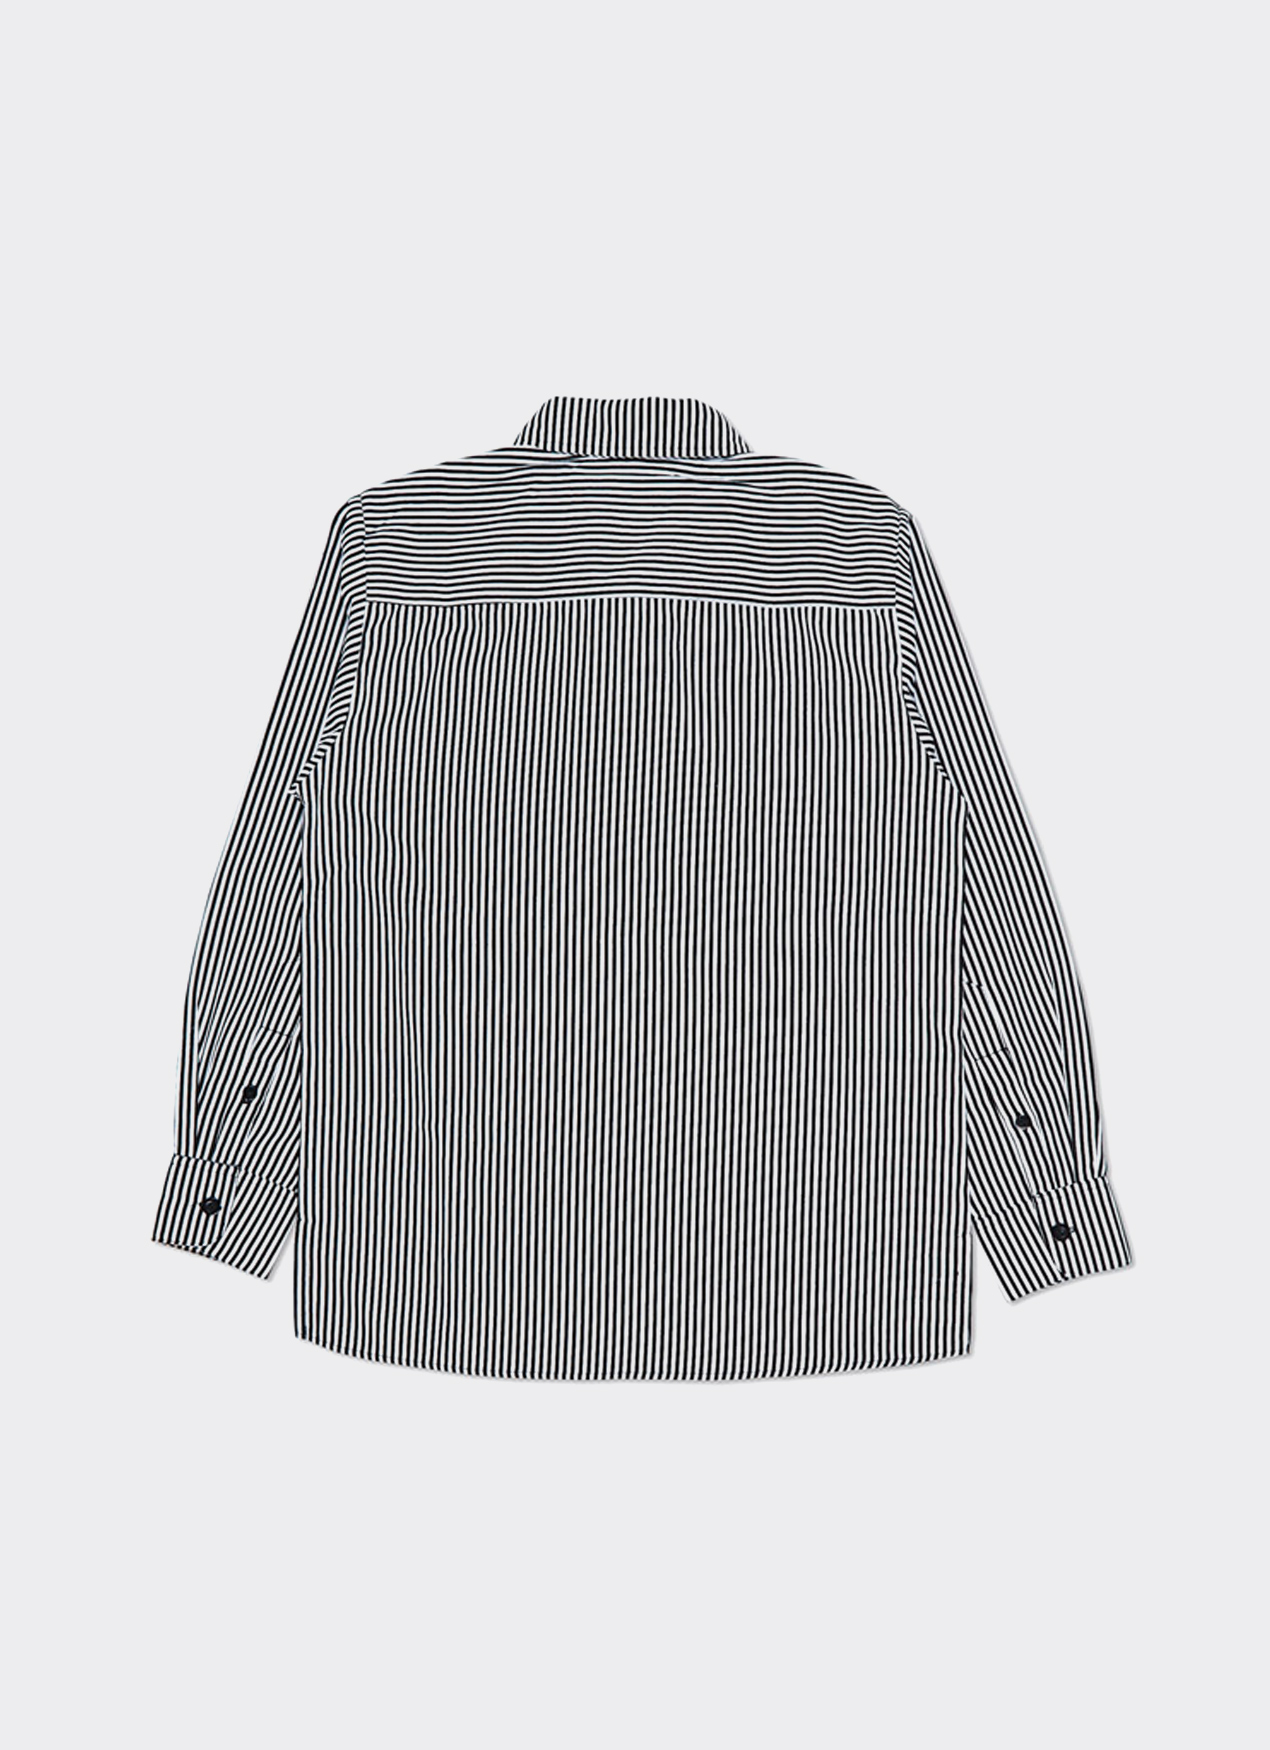 Leisure Leisure Stripe Safetypin LS Shirt - White